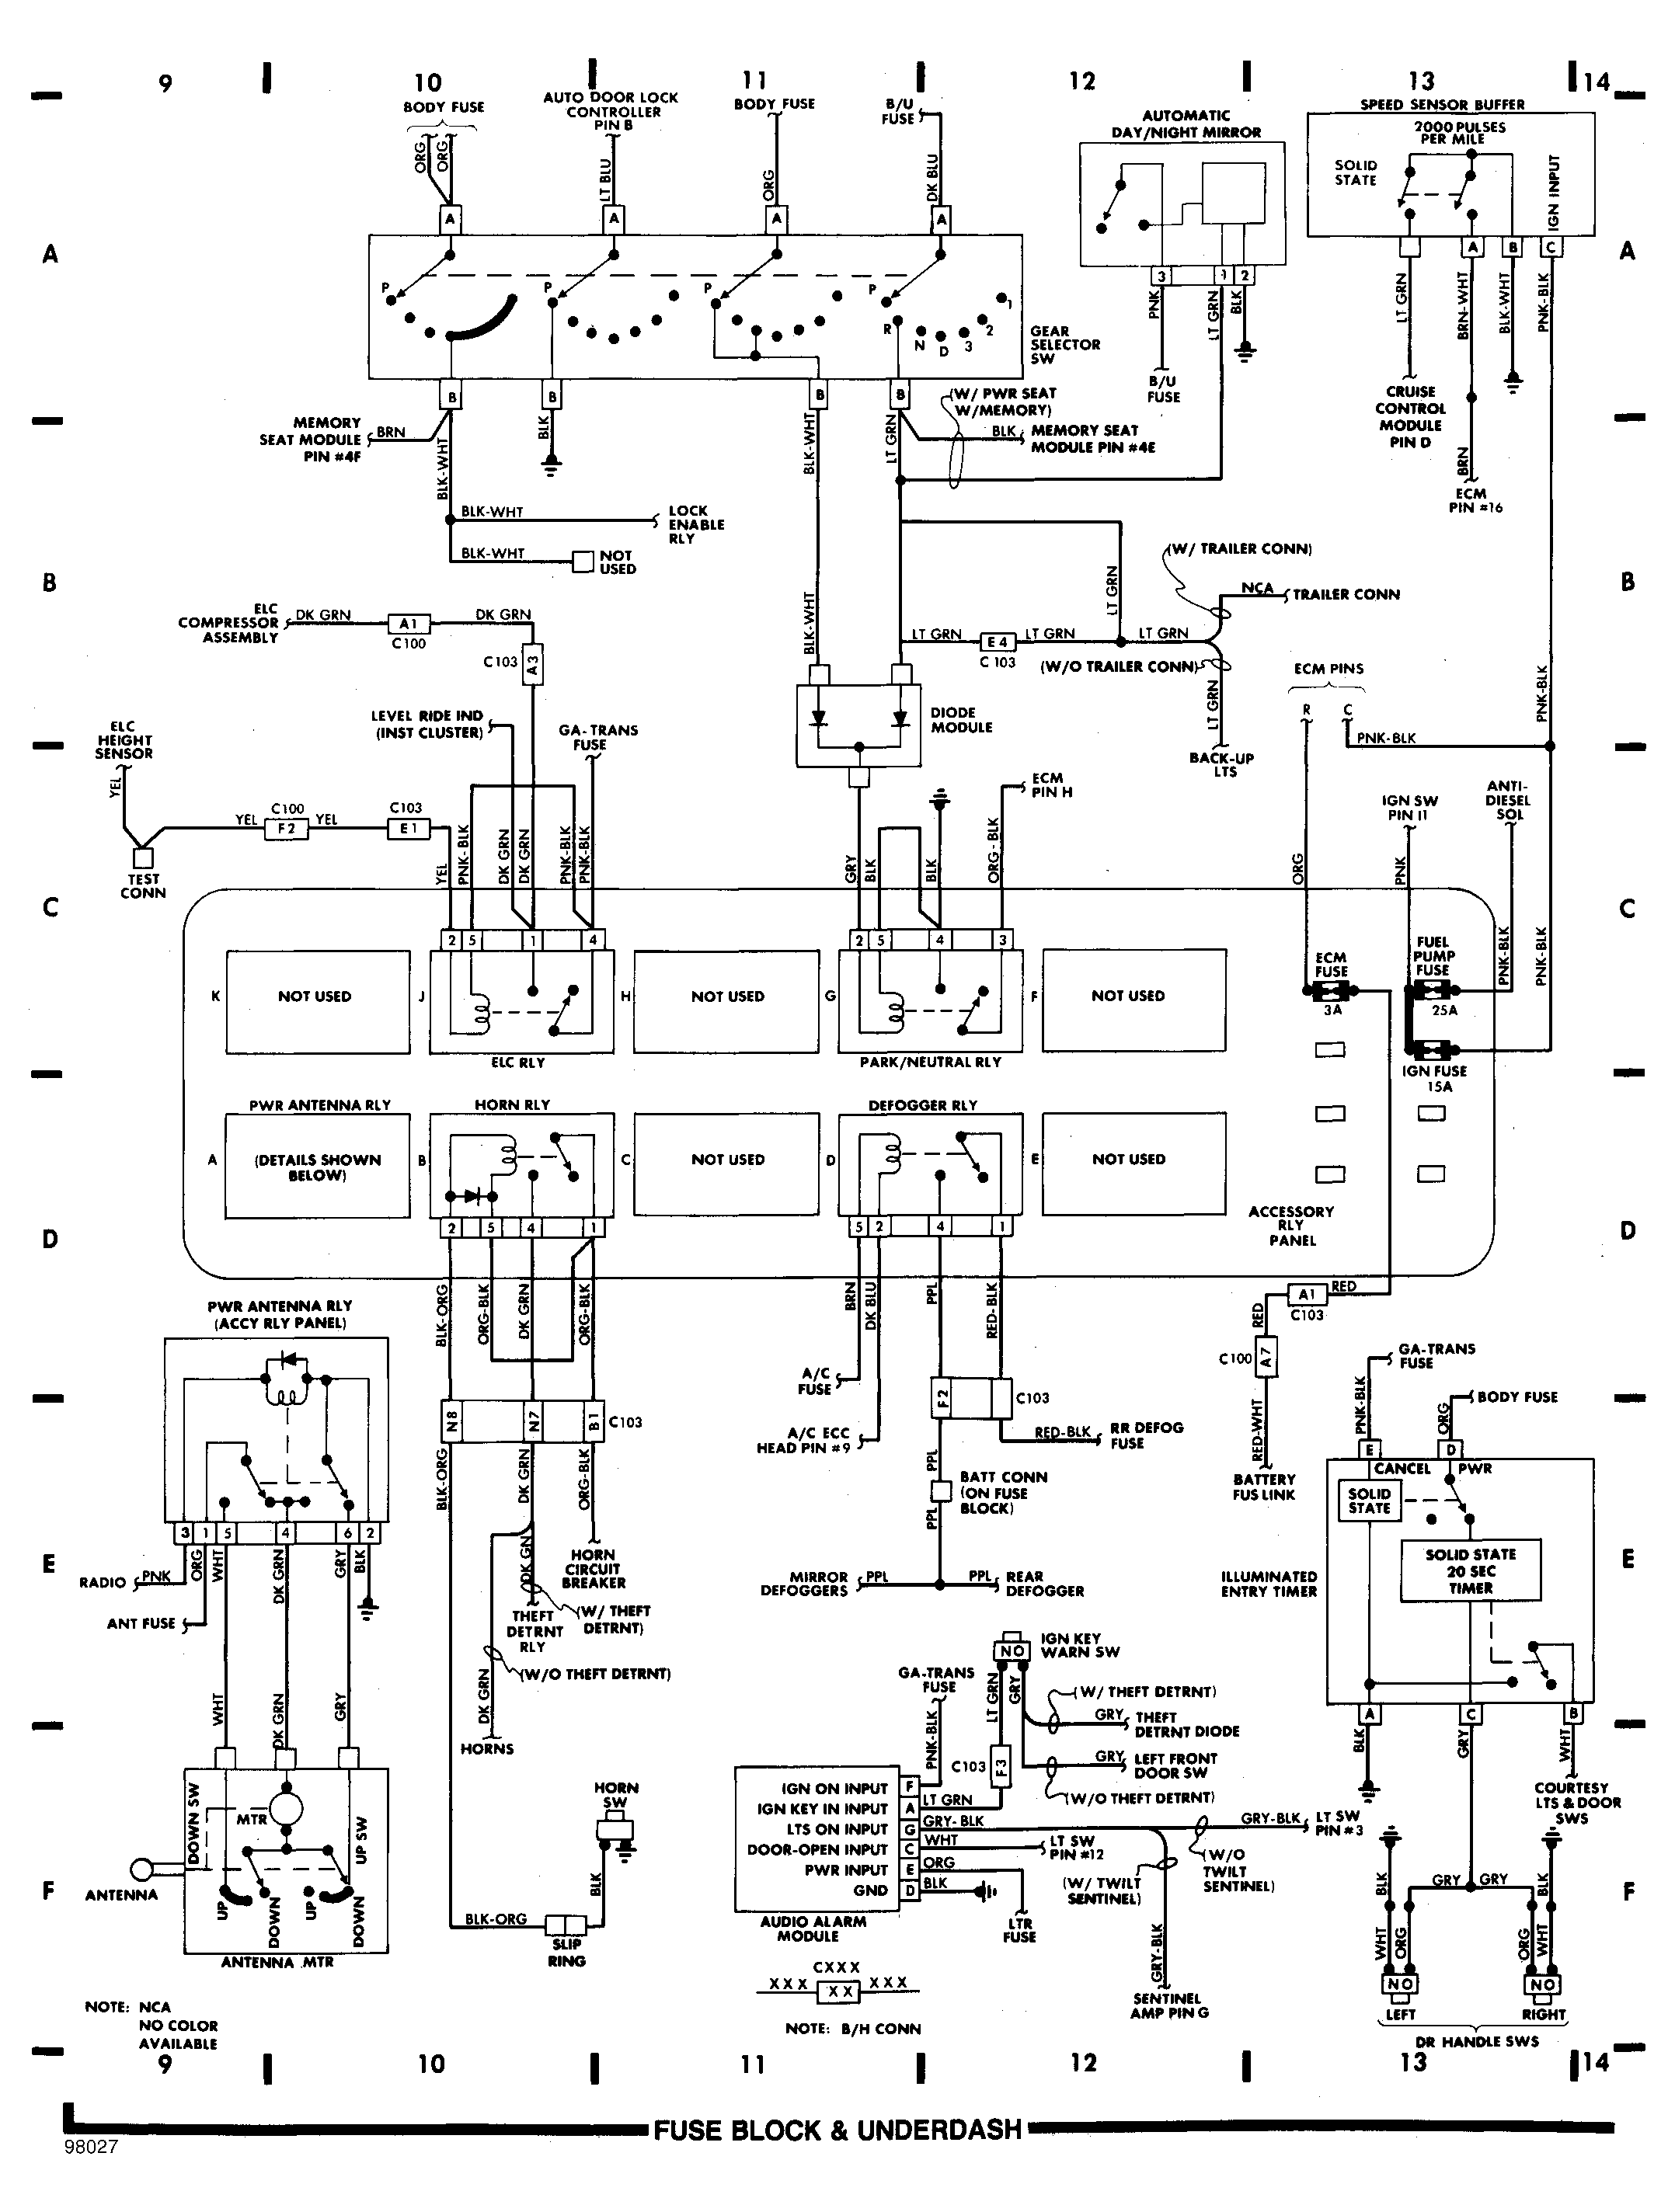 Wiring Diagrams 1990 Cadillac Brougham Fuse Box Diagram Block And Underdash